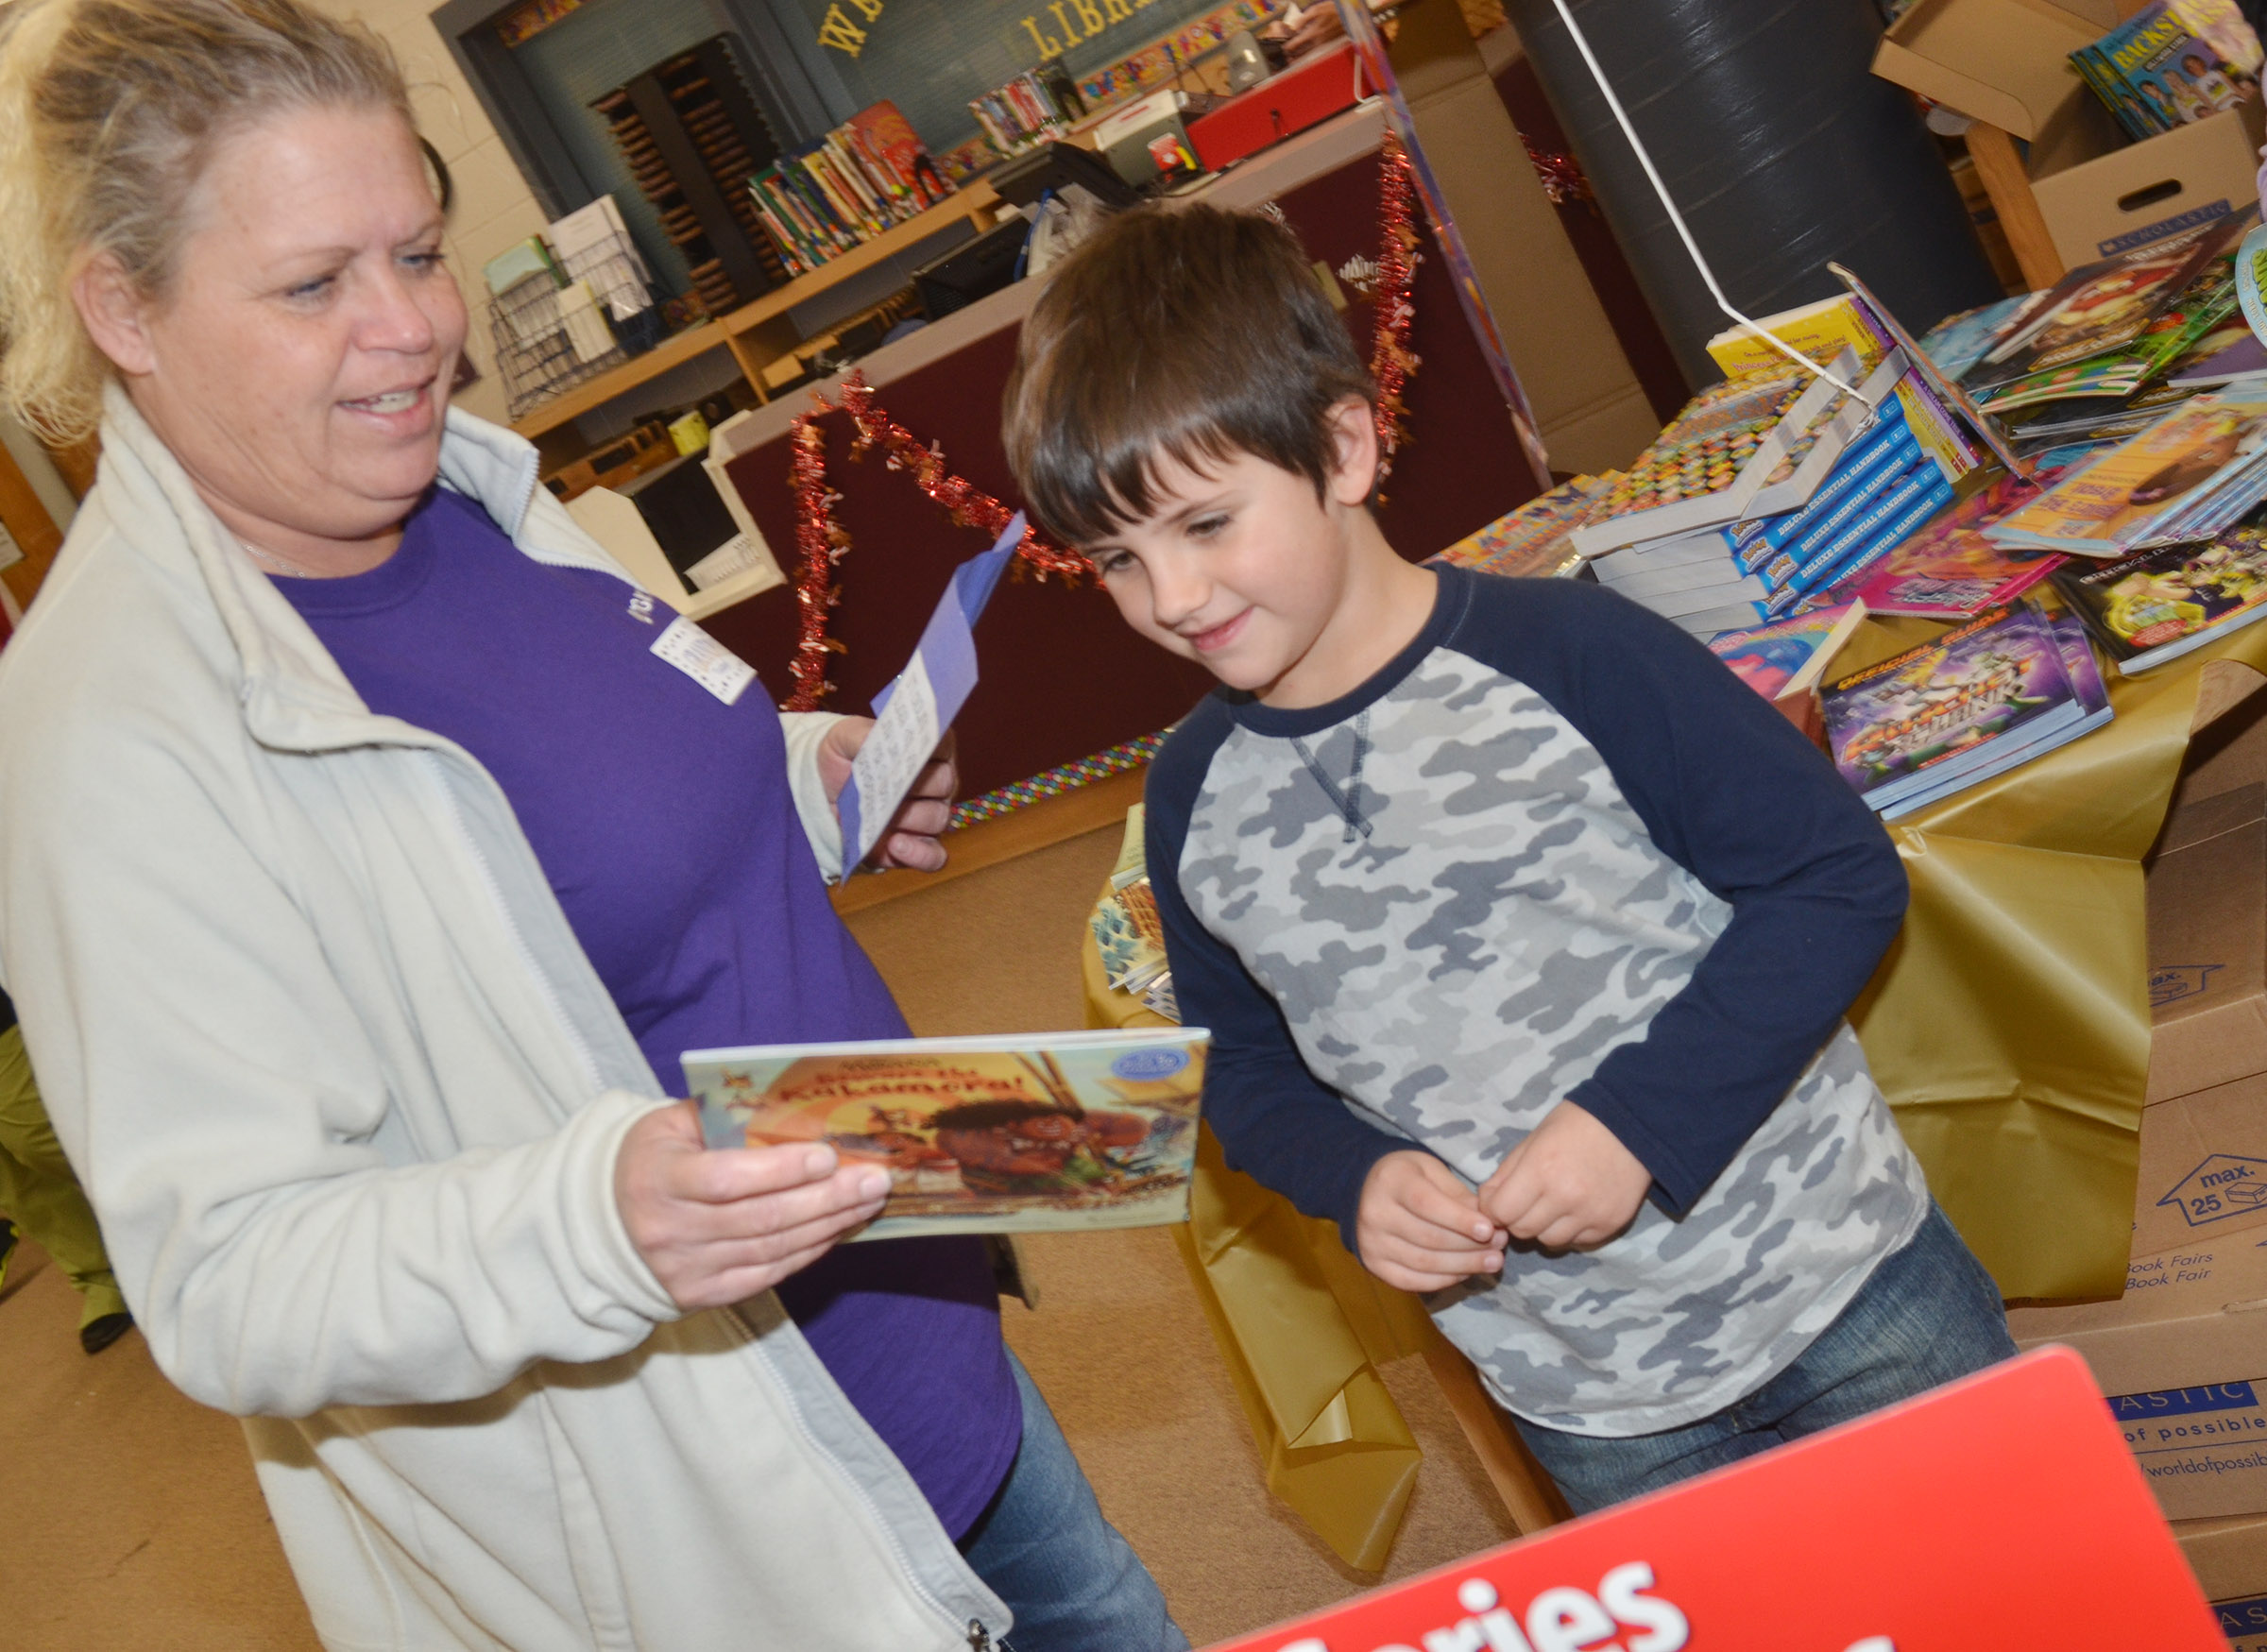 CES kindergartener Casen Meredith shops for books with his grandmother, Barbie Petrie.